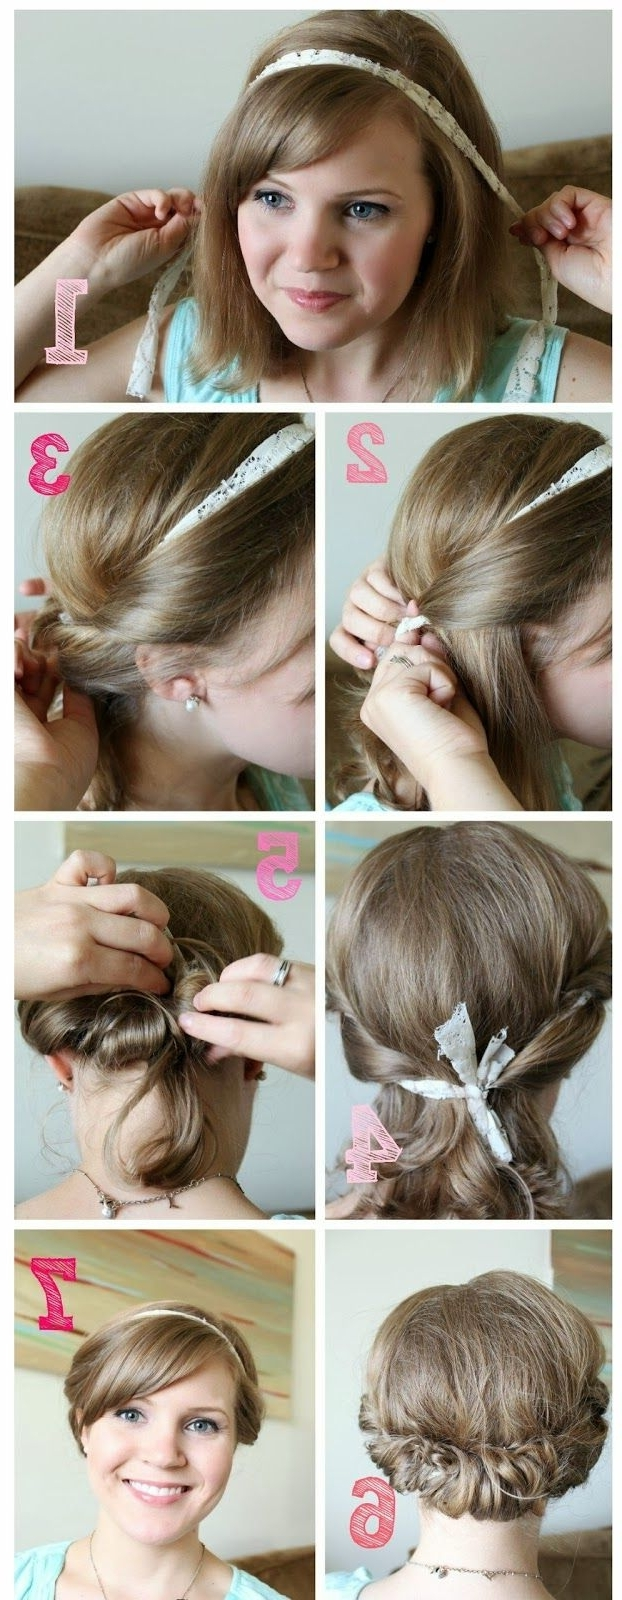 76 Best •• Hair And Beauty •• Images On Pinterest | Coiffure Facile In Super Easy Updos For Short Hair (Gallery 12 of 15)